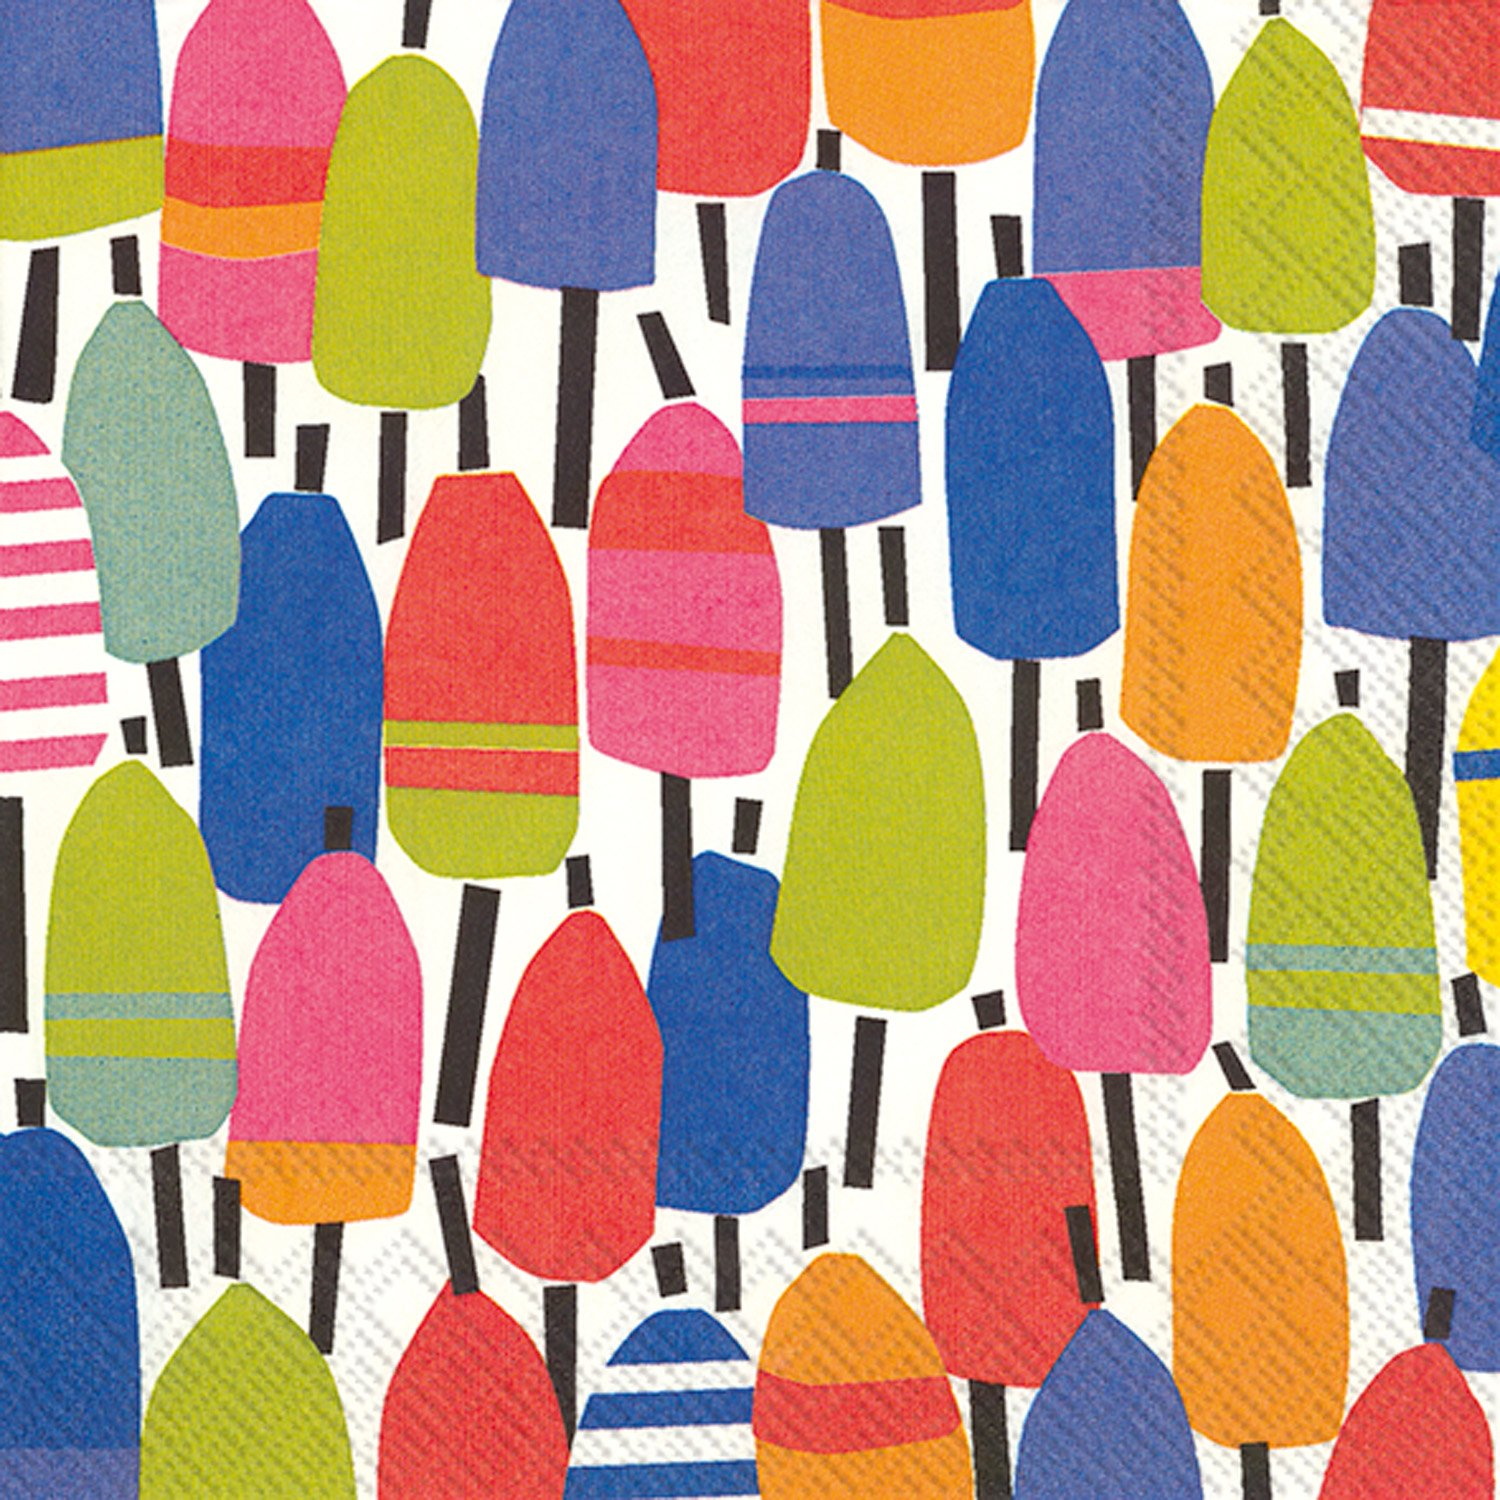 Celebrate the Home Kate Nelligan 3-Ply Paper Cocktail Napkins, Buoys, 20 Count